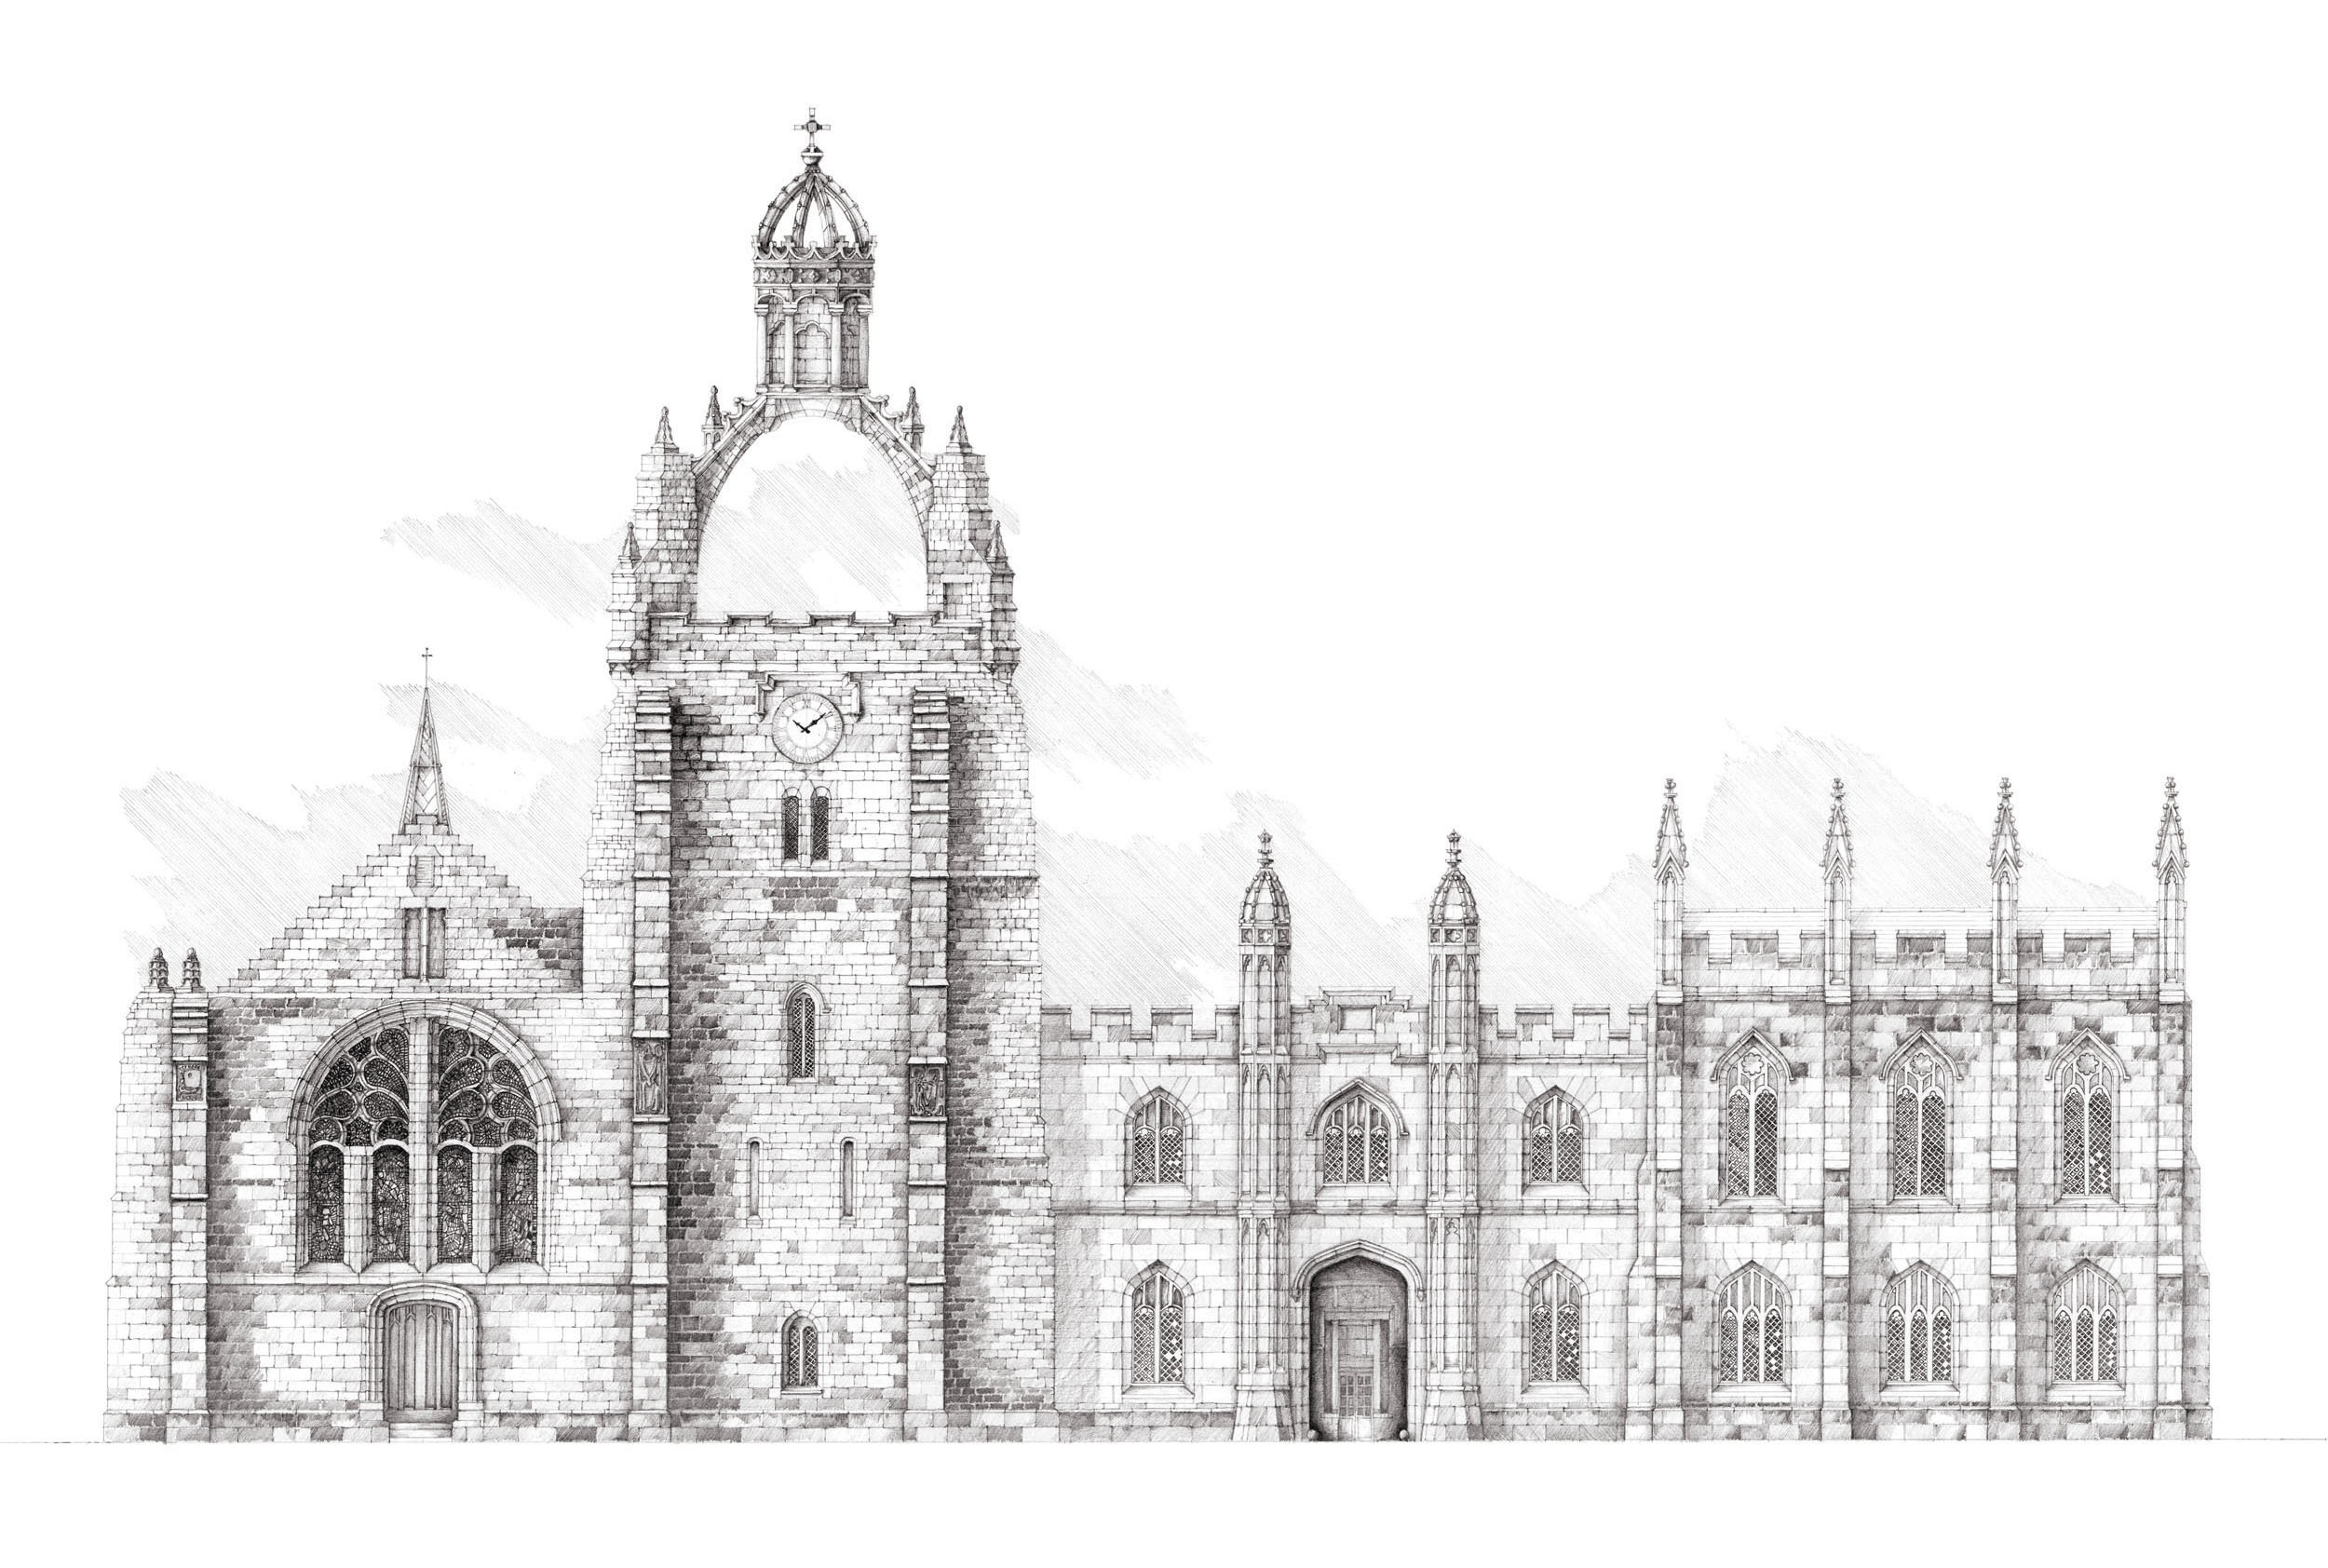 King's College by Jamie Cameron